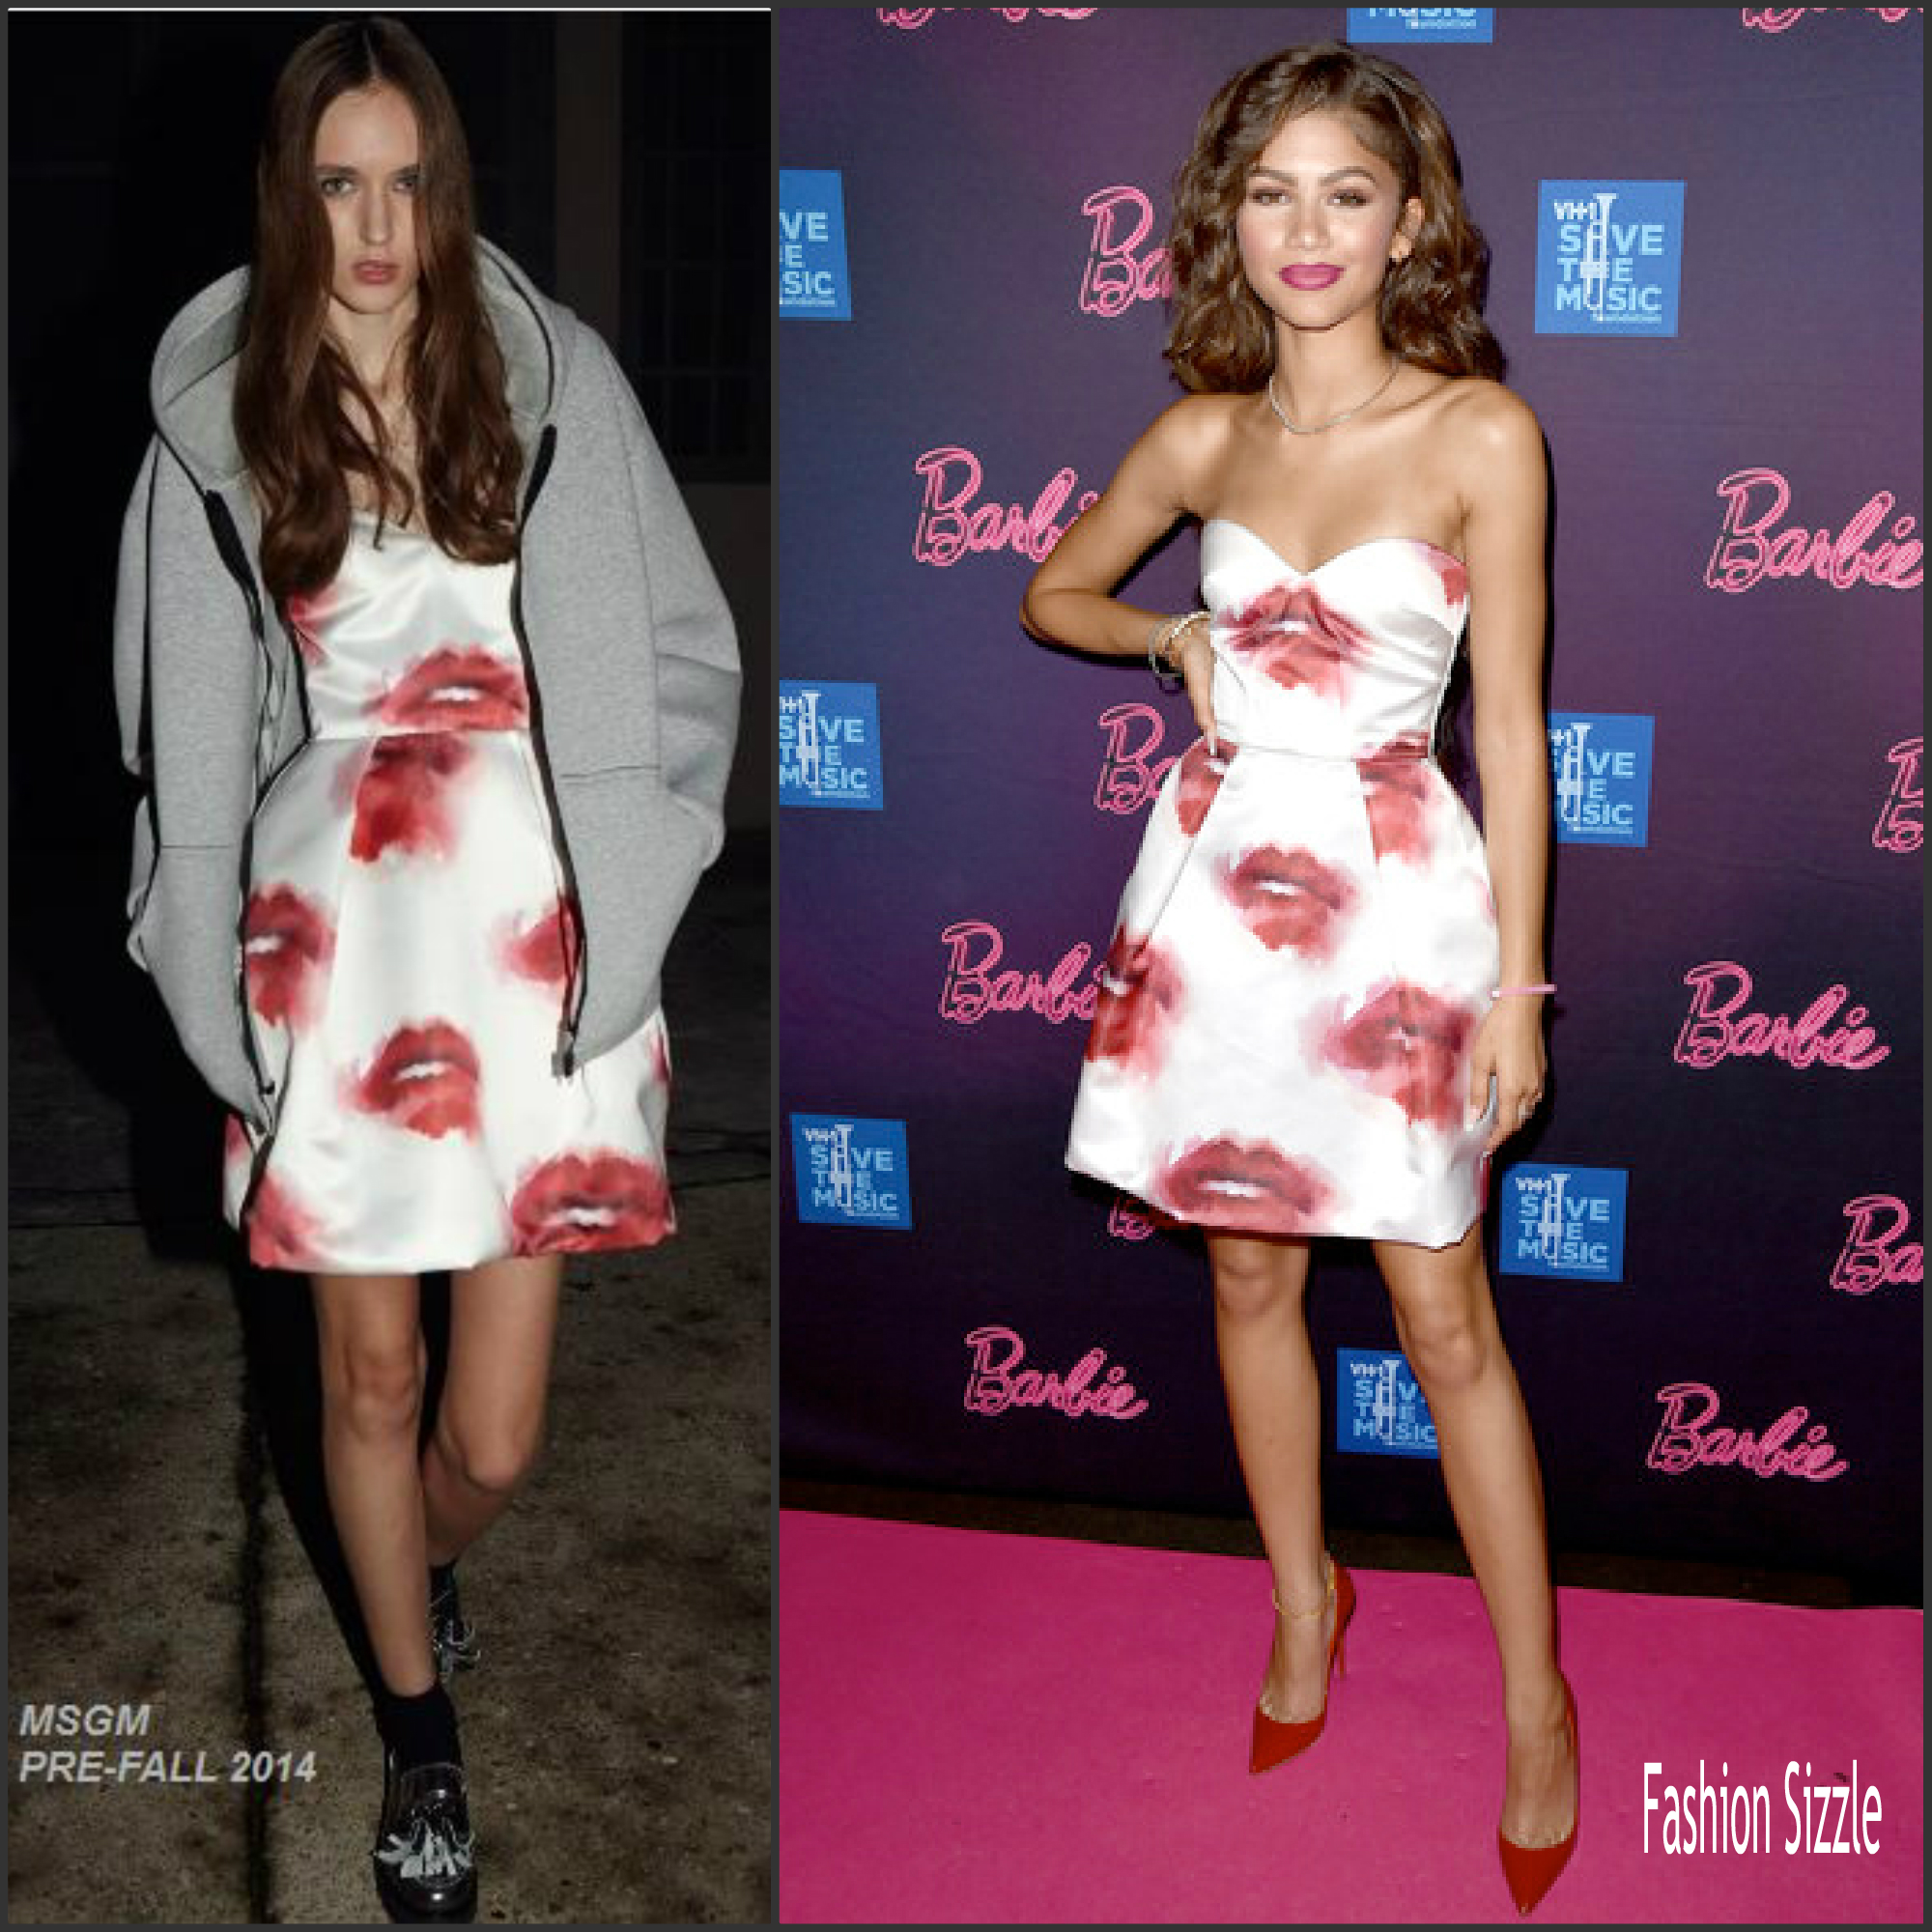 zendaya-coleman-in-msgm-at-the-barbie-rock-n-royals-concert-experience